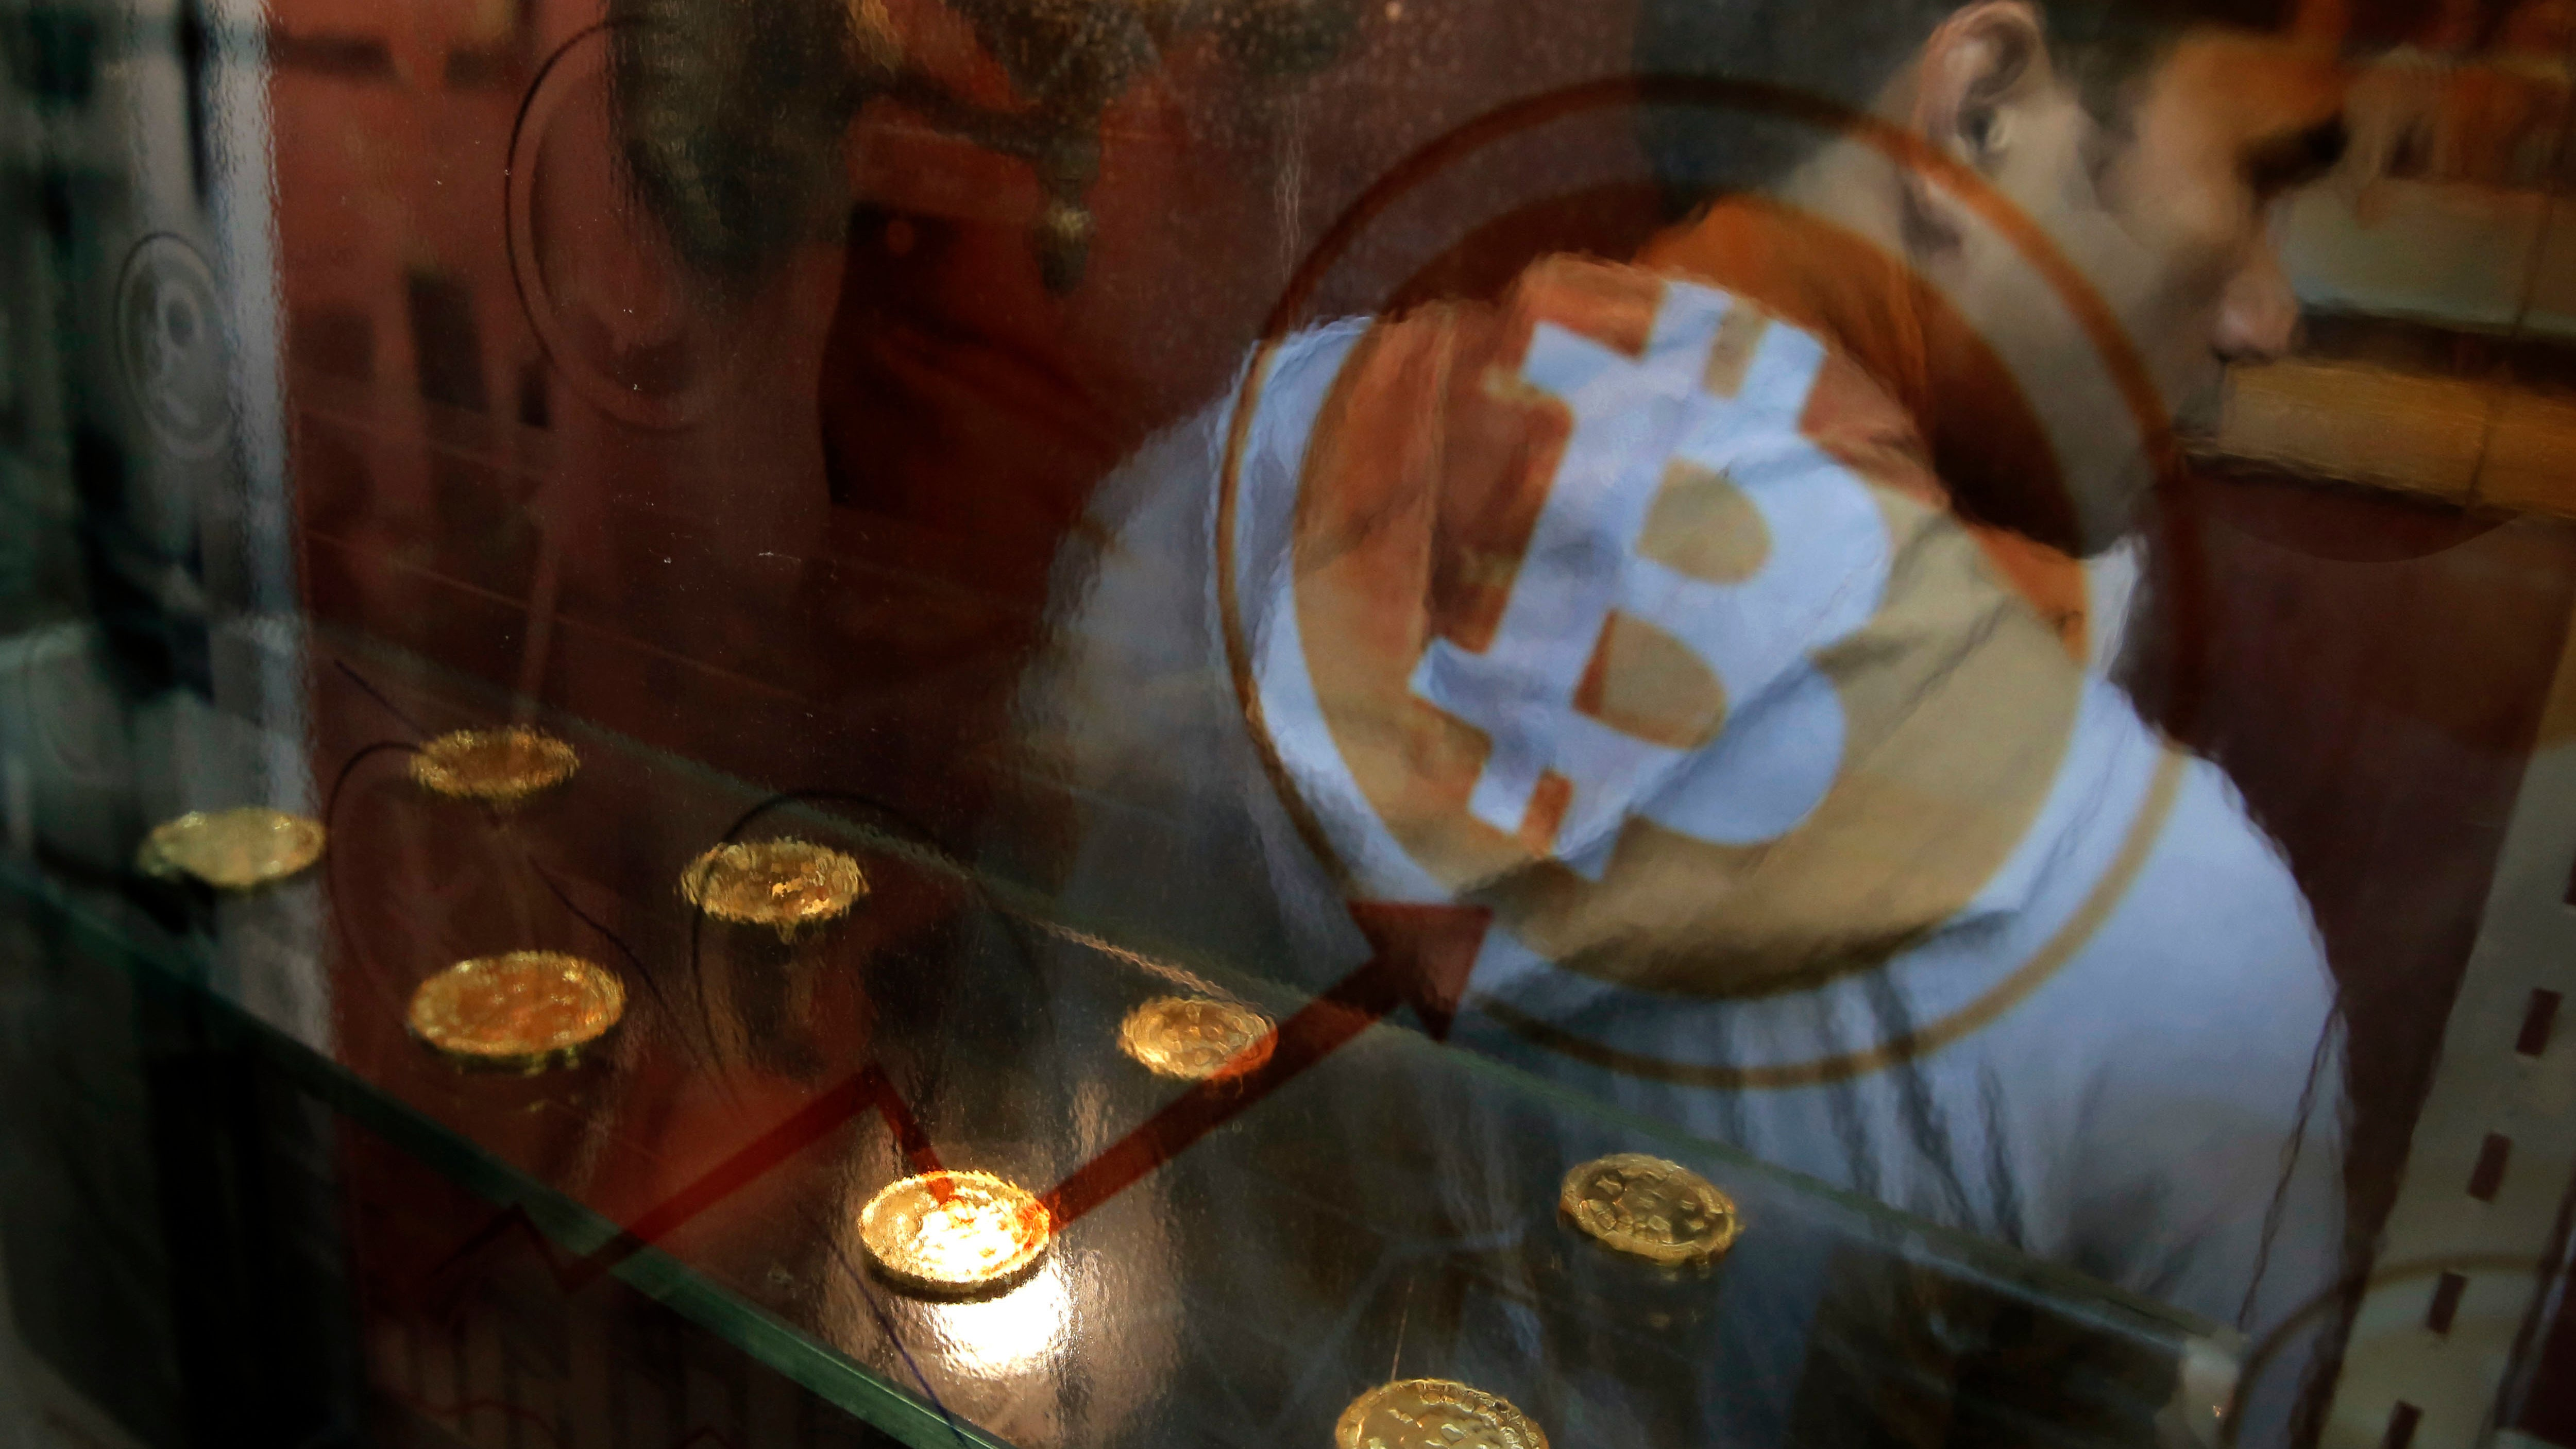 Researchers Say $500 Million Raised Through Cryptocurrency ICOs Has Been Lost Or Stolen